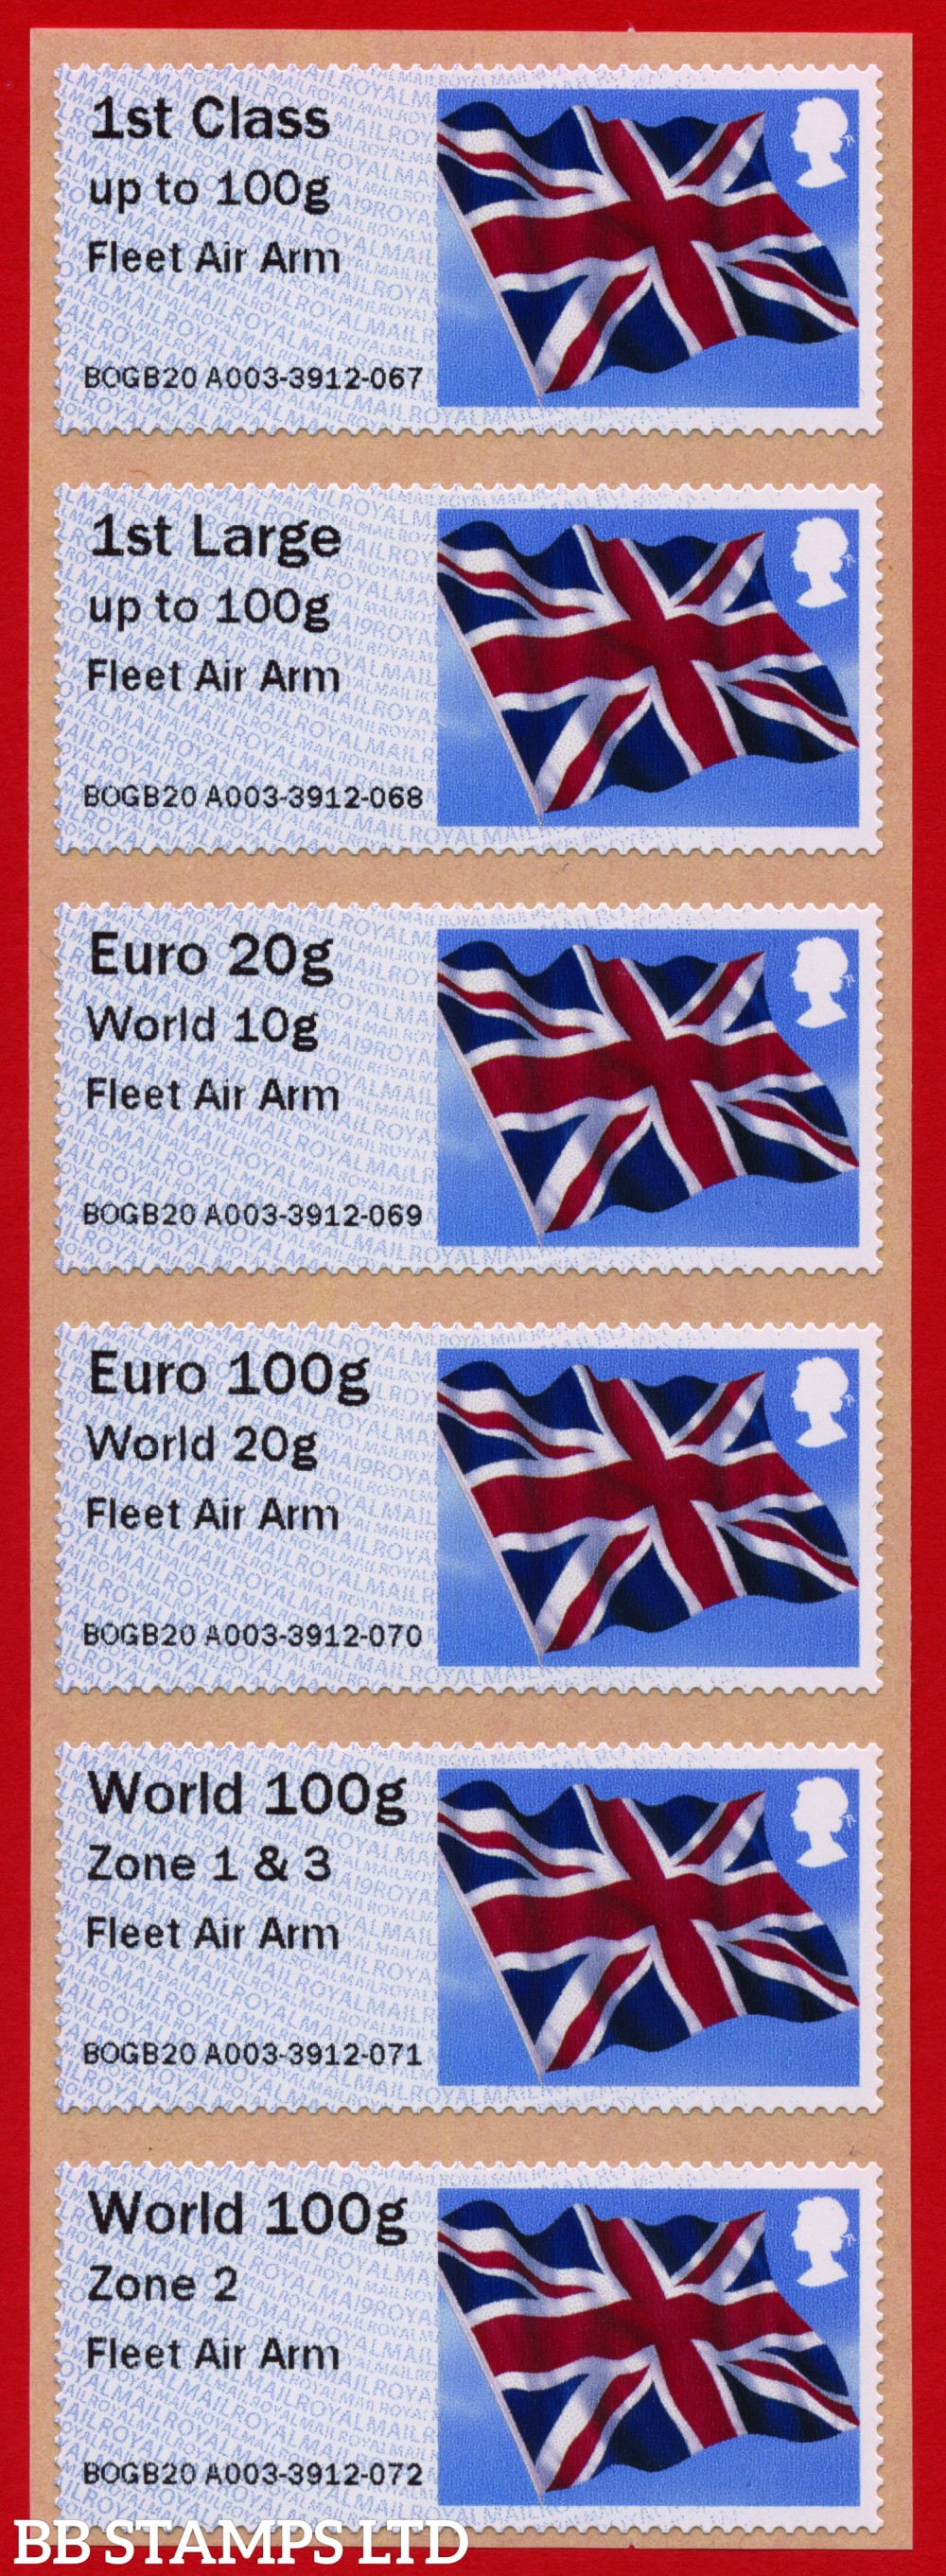 Union Flag: Fleet Air Arm [digital print], set of 6 (TIIIA) with new o/seas stamps, revised 18/09/20: 1st/1stL/Euro 20g World 10g, and 3 new values: Euro 100g World 20g, World 100g Zone 1 & 3 [&, not a hyphen], and World Zone 2: MA19 year code (BK30 P14)